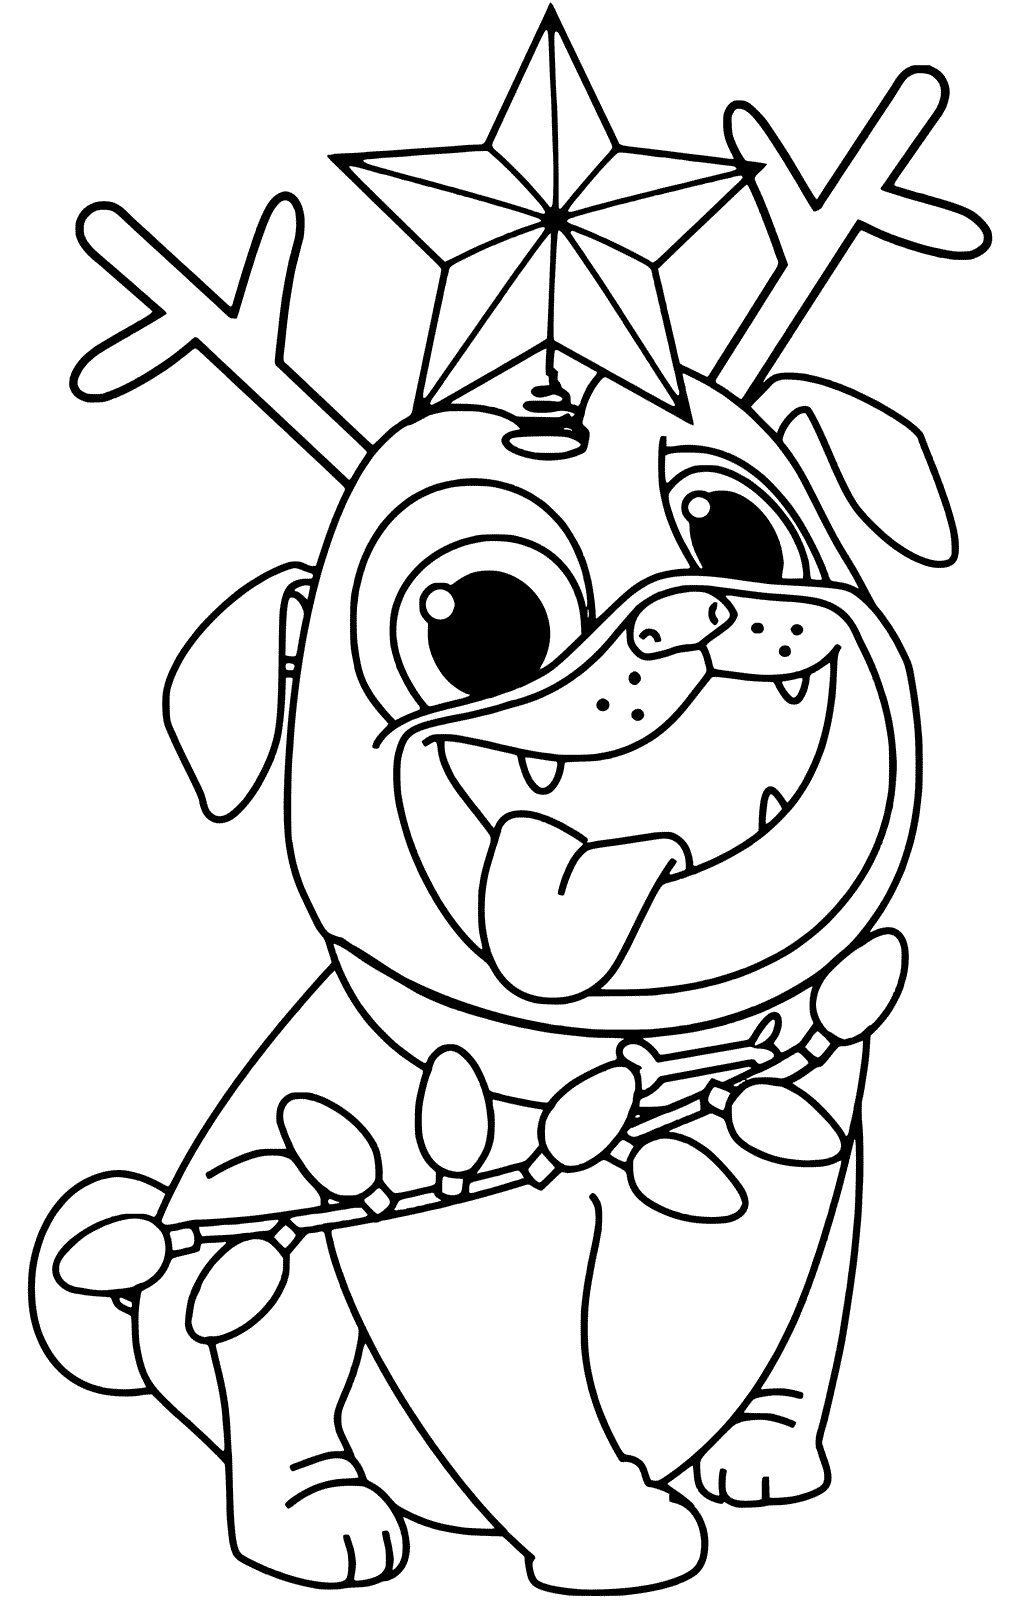 a coloring page of a dog portuguese water dog coloring page at getcoloringscom a of dog page coloring a